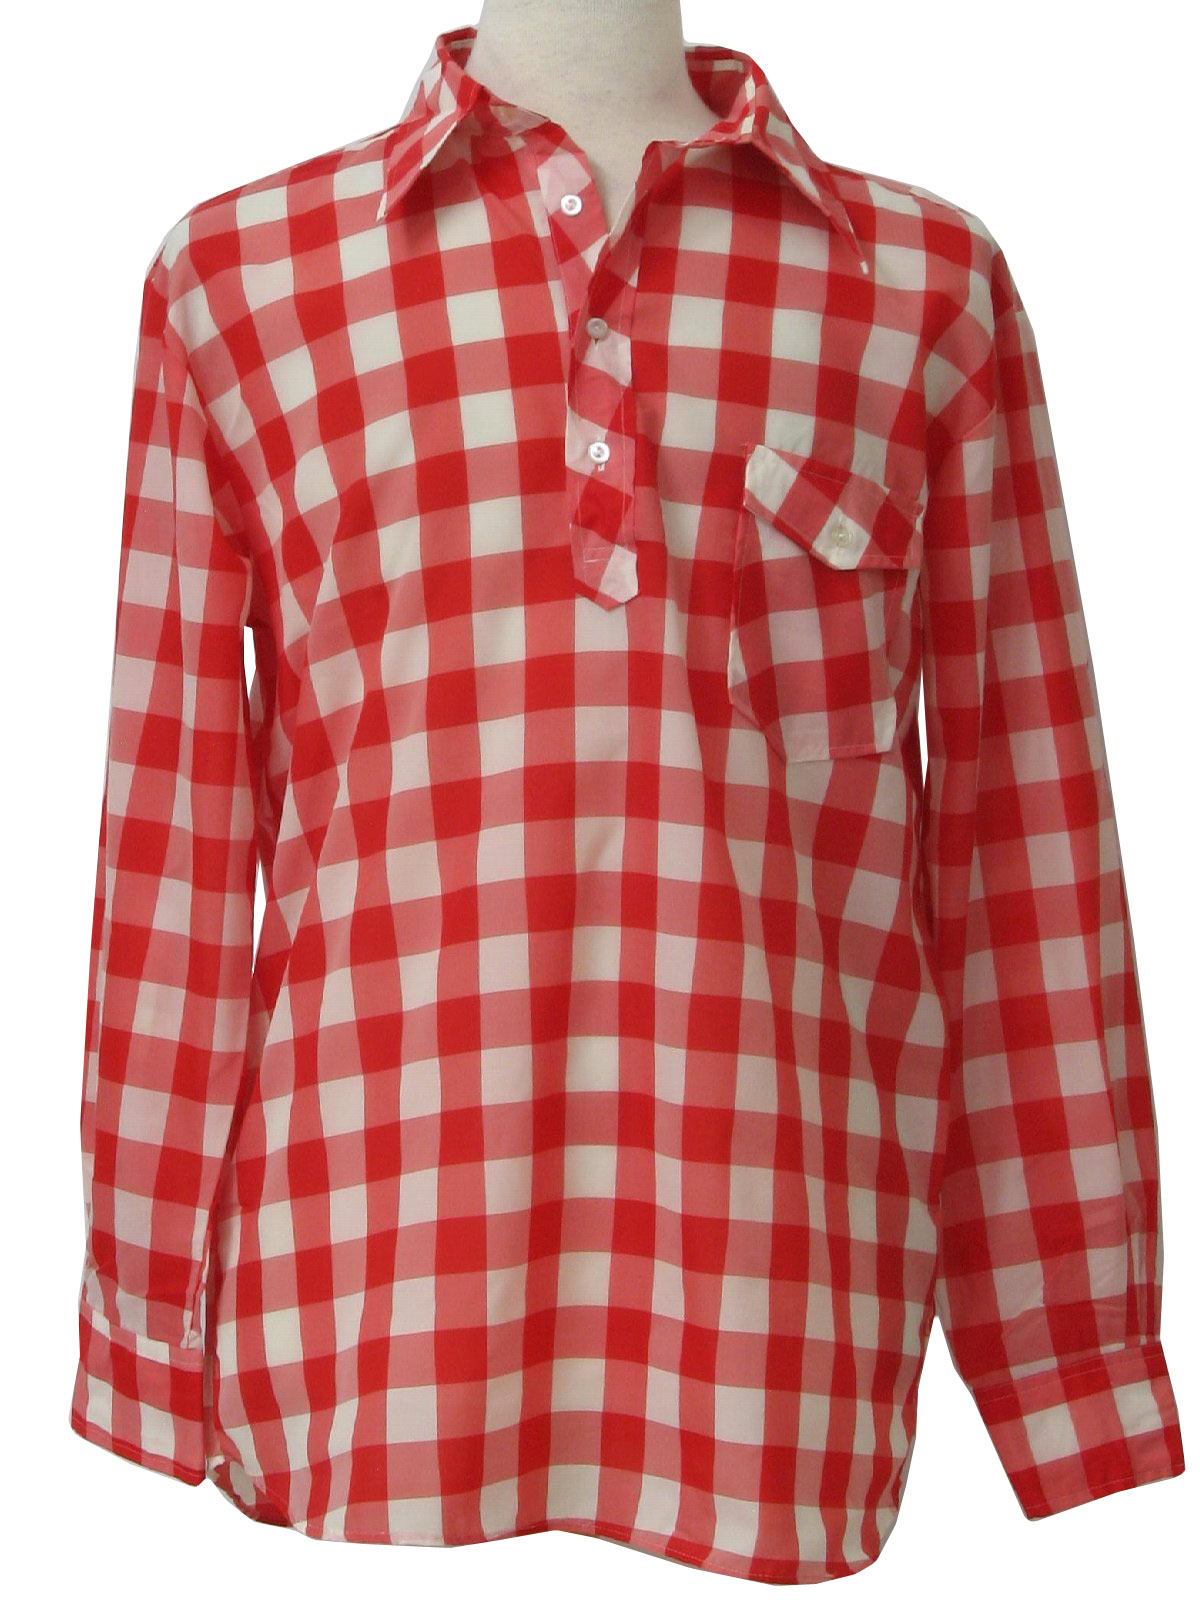 red and white checkered shirt images